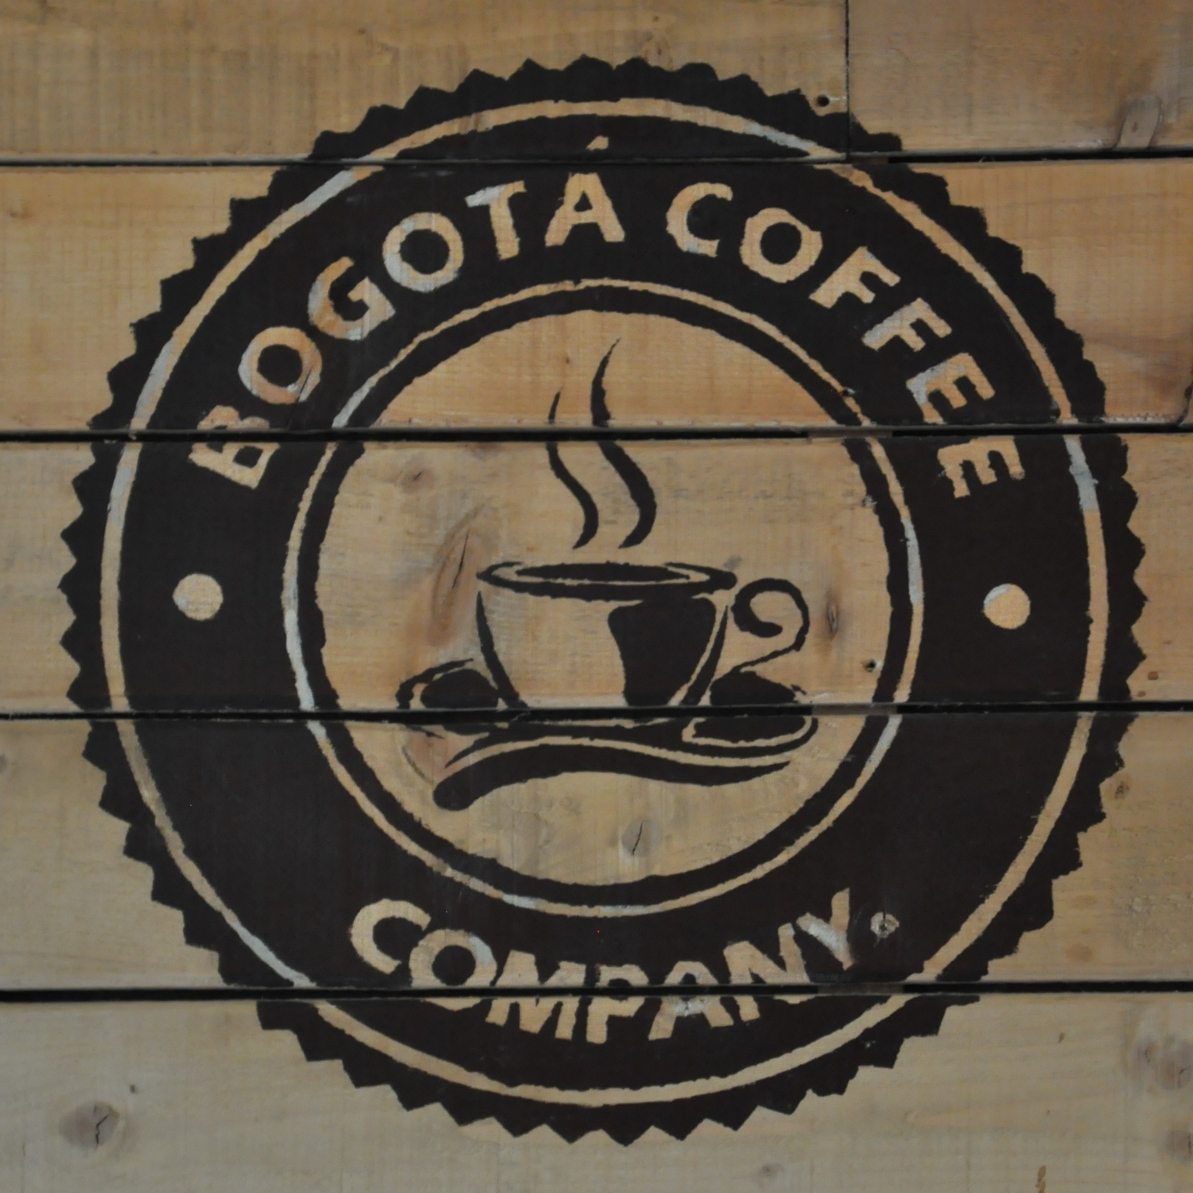 "The logo of Bogotá Coffee, painted on the wall of the coffee shop, the words ""Bogotá Coffee Company"" in a circle surrounding a steaming coffee cup."